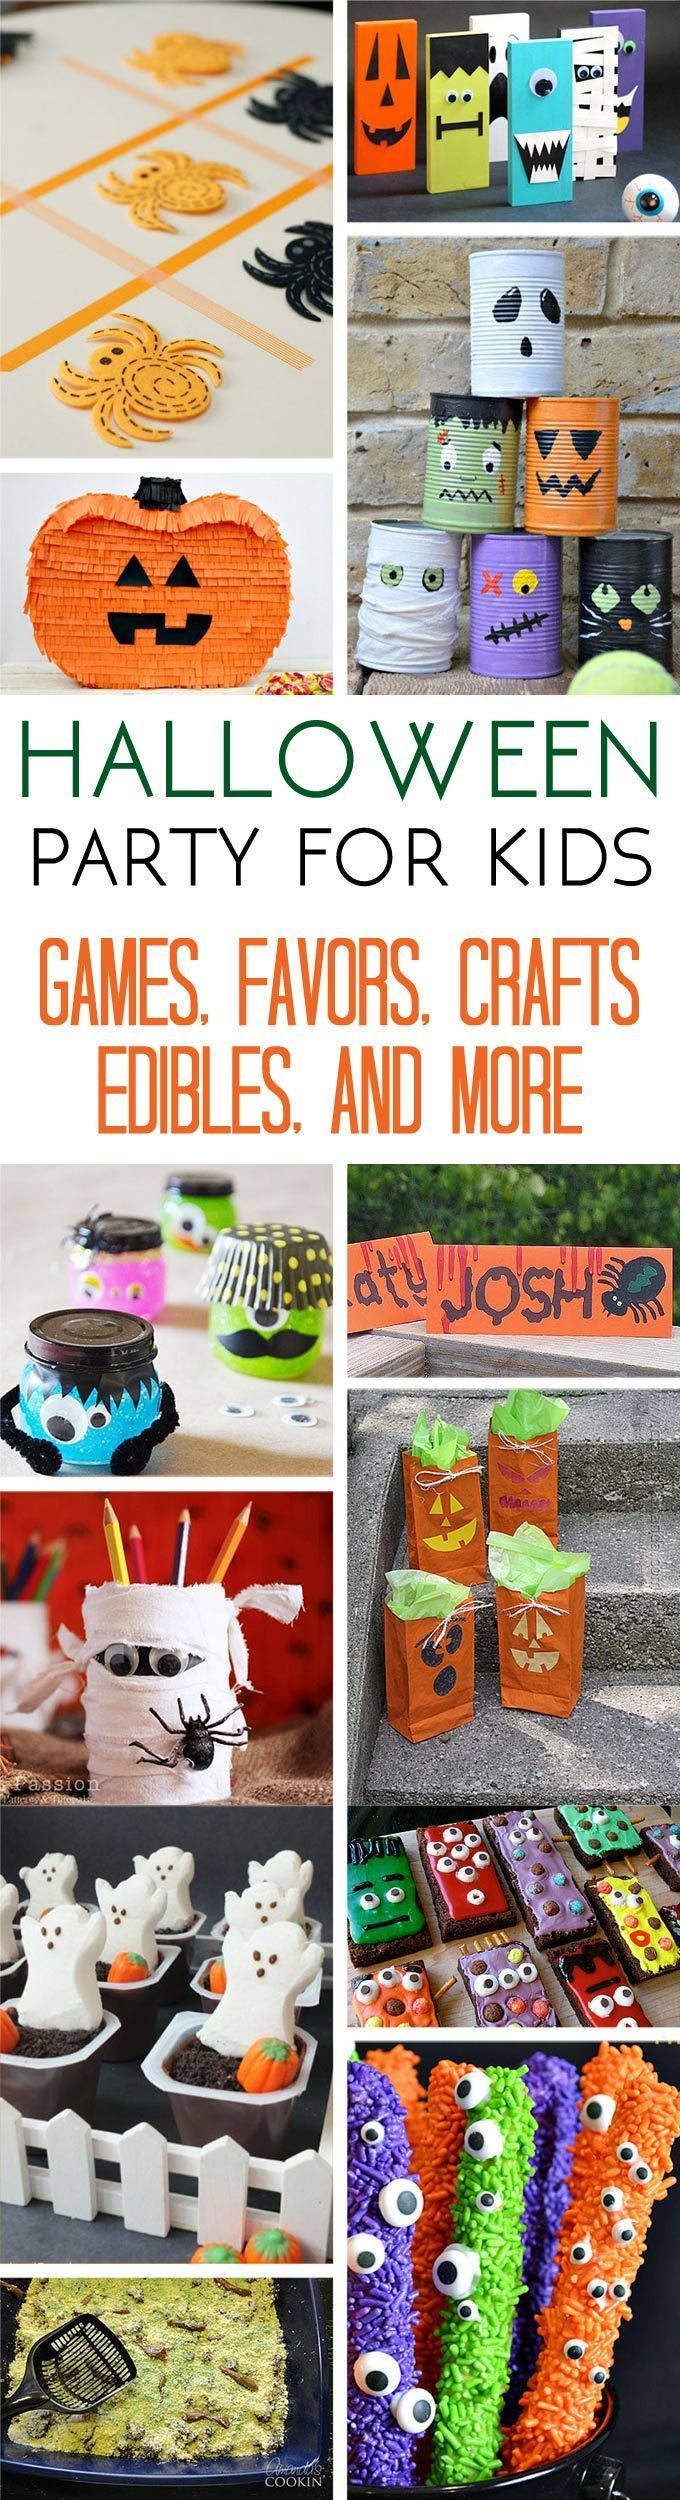 Best 20+ Kids halloween games ideas on Pinterest | Halloween party ...